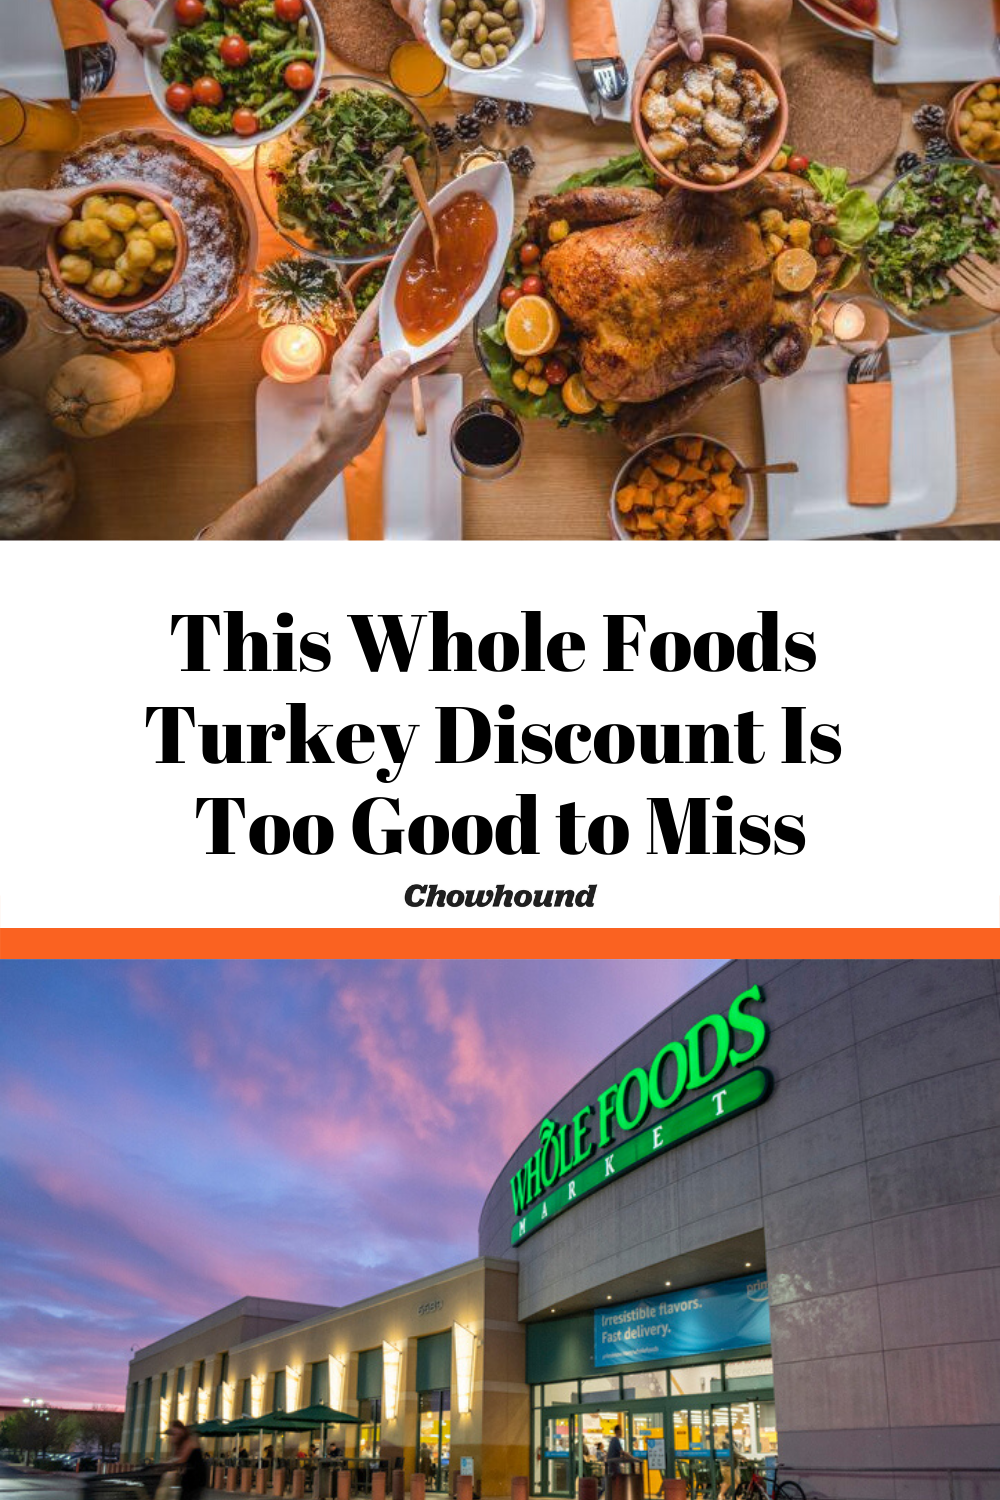 A Whole Foods Turkey Discount Too Good to Miss Whole